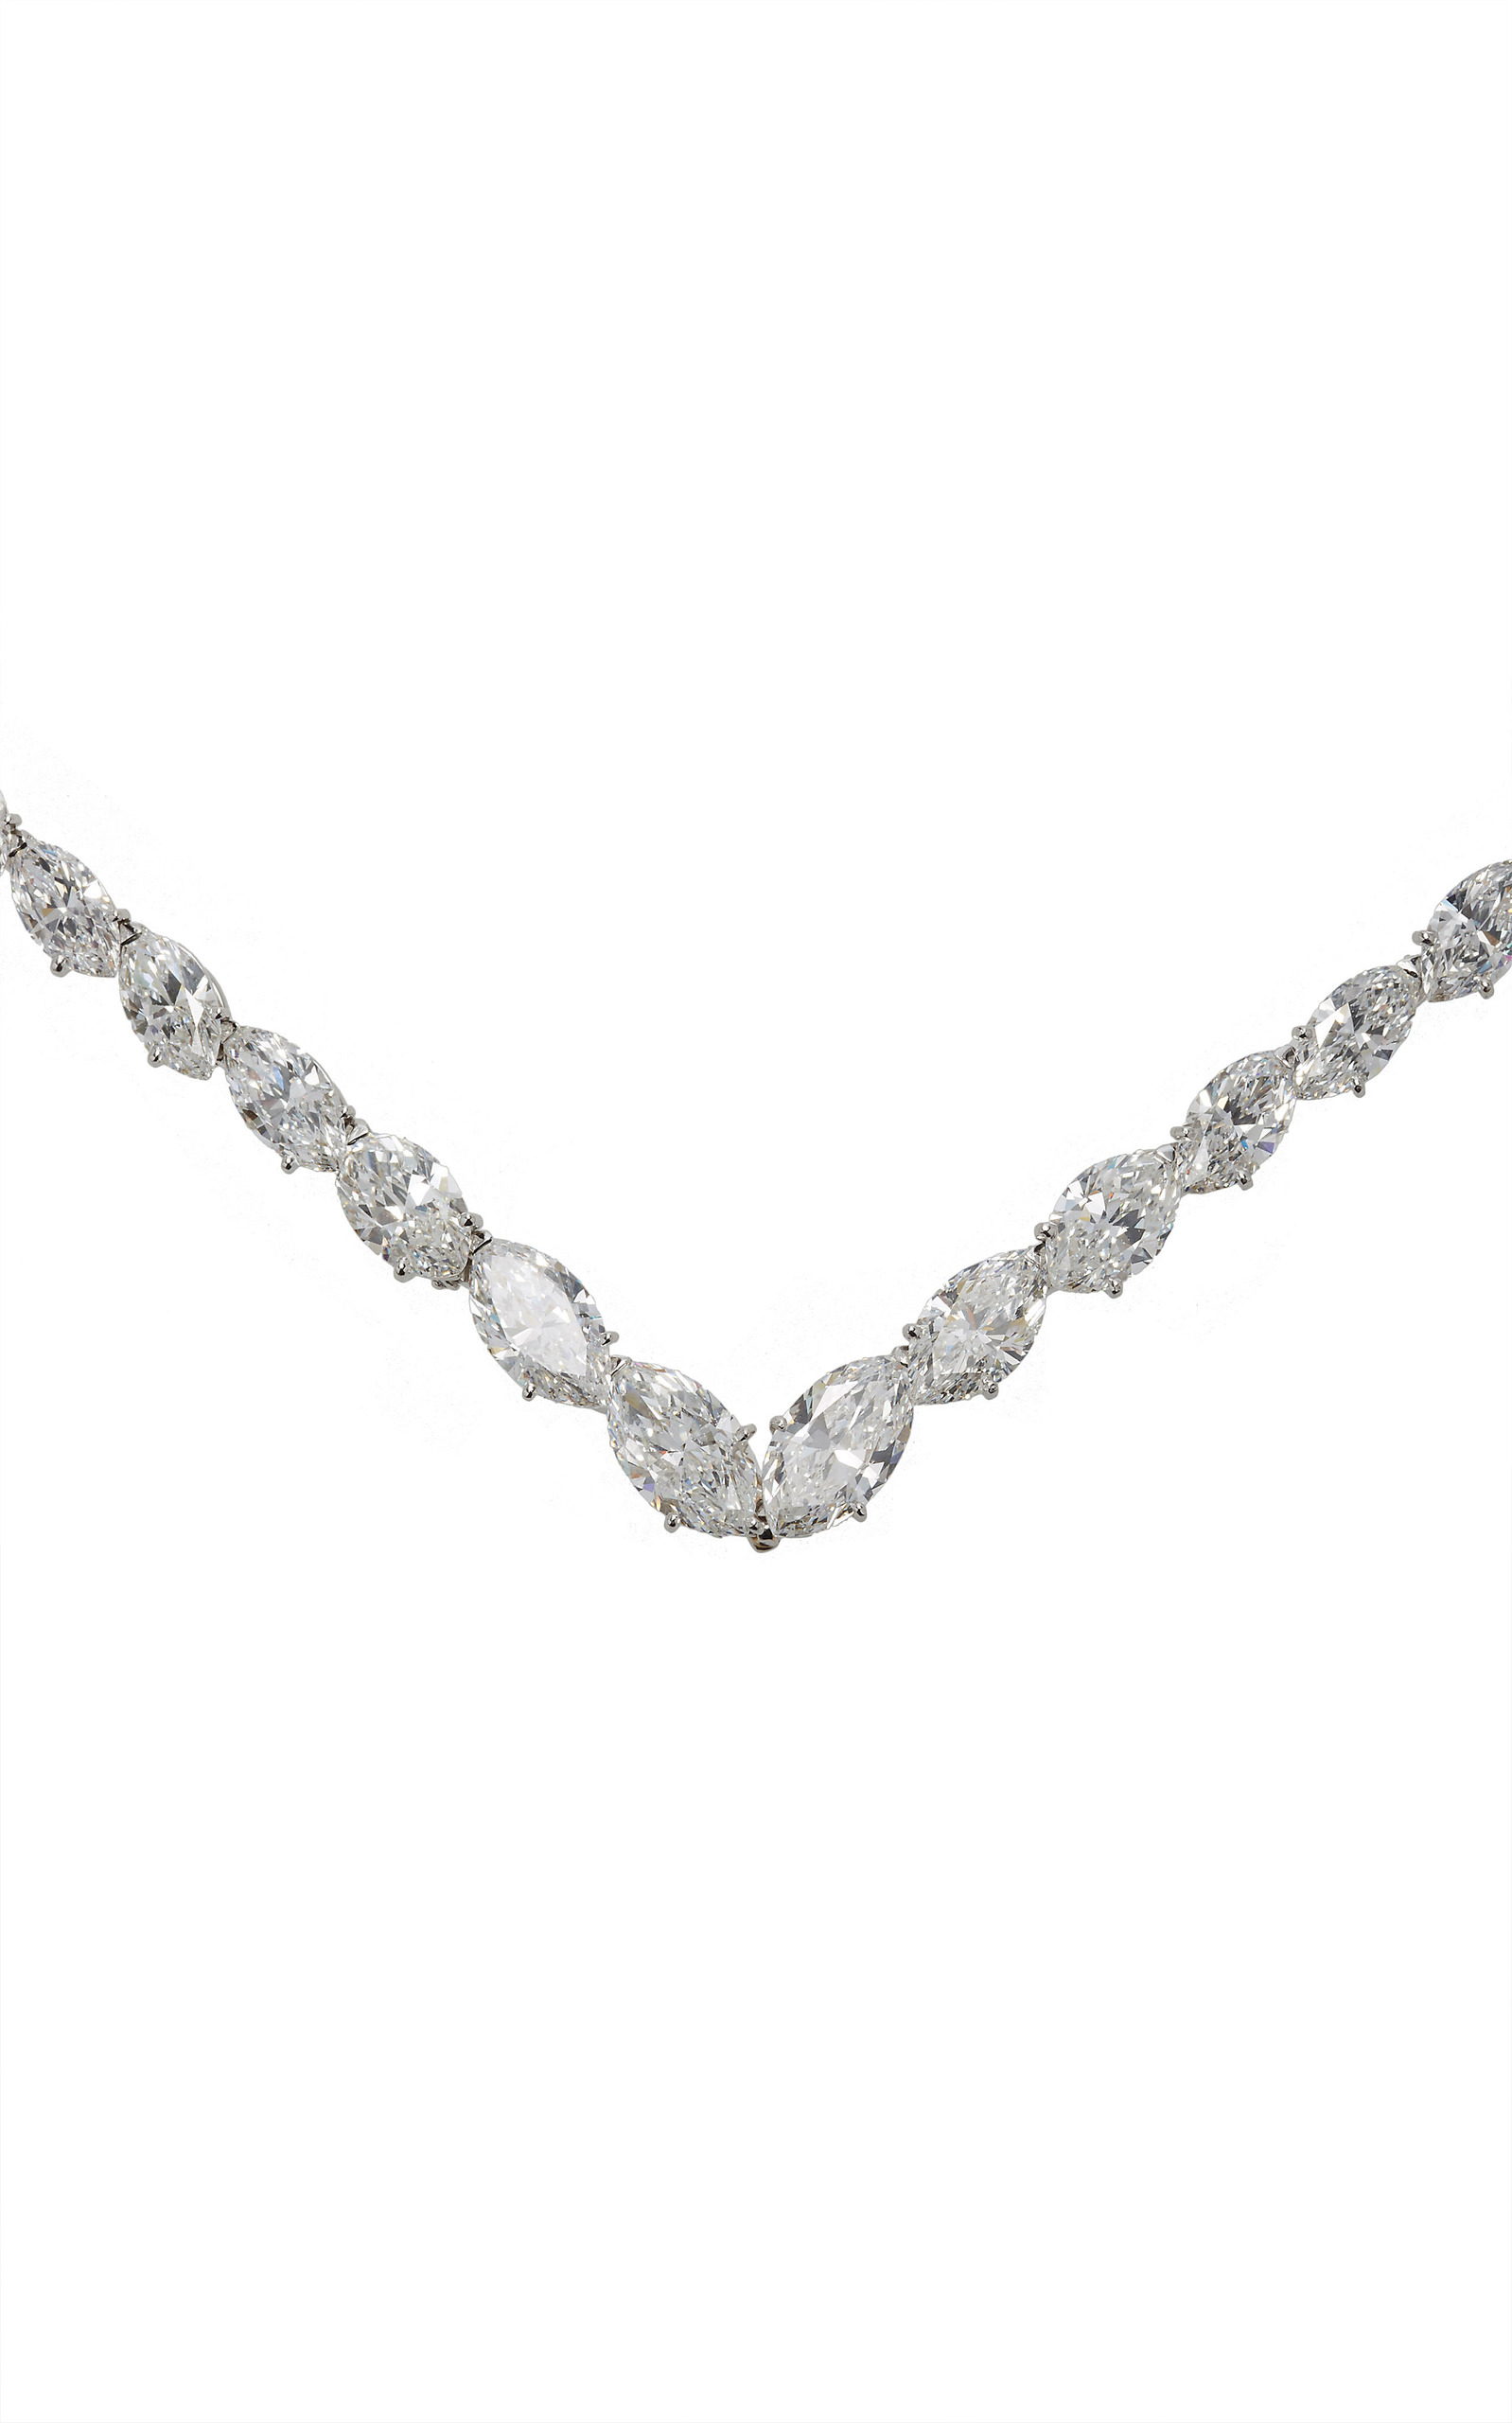 fringe marquise masterpieces co necklace elite tiffany features neck the diamond traveler